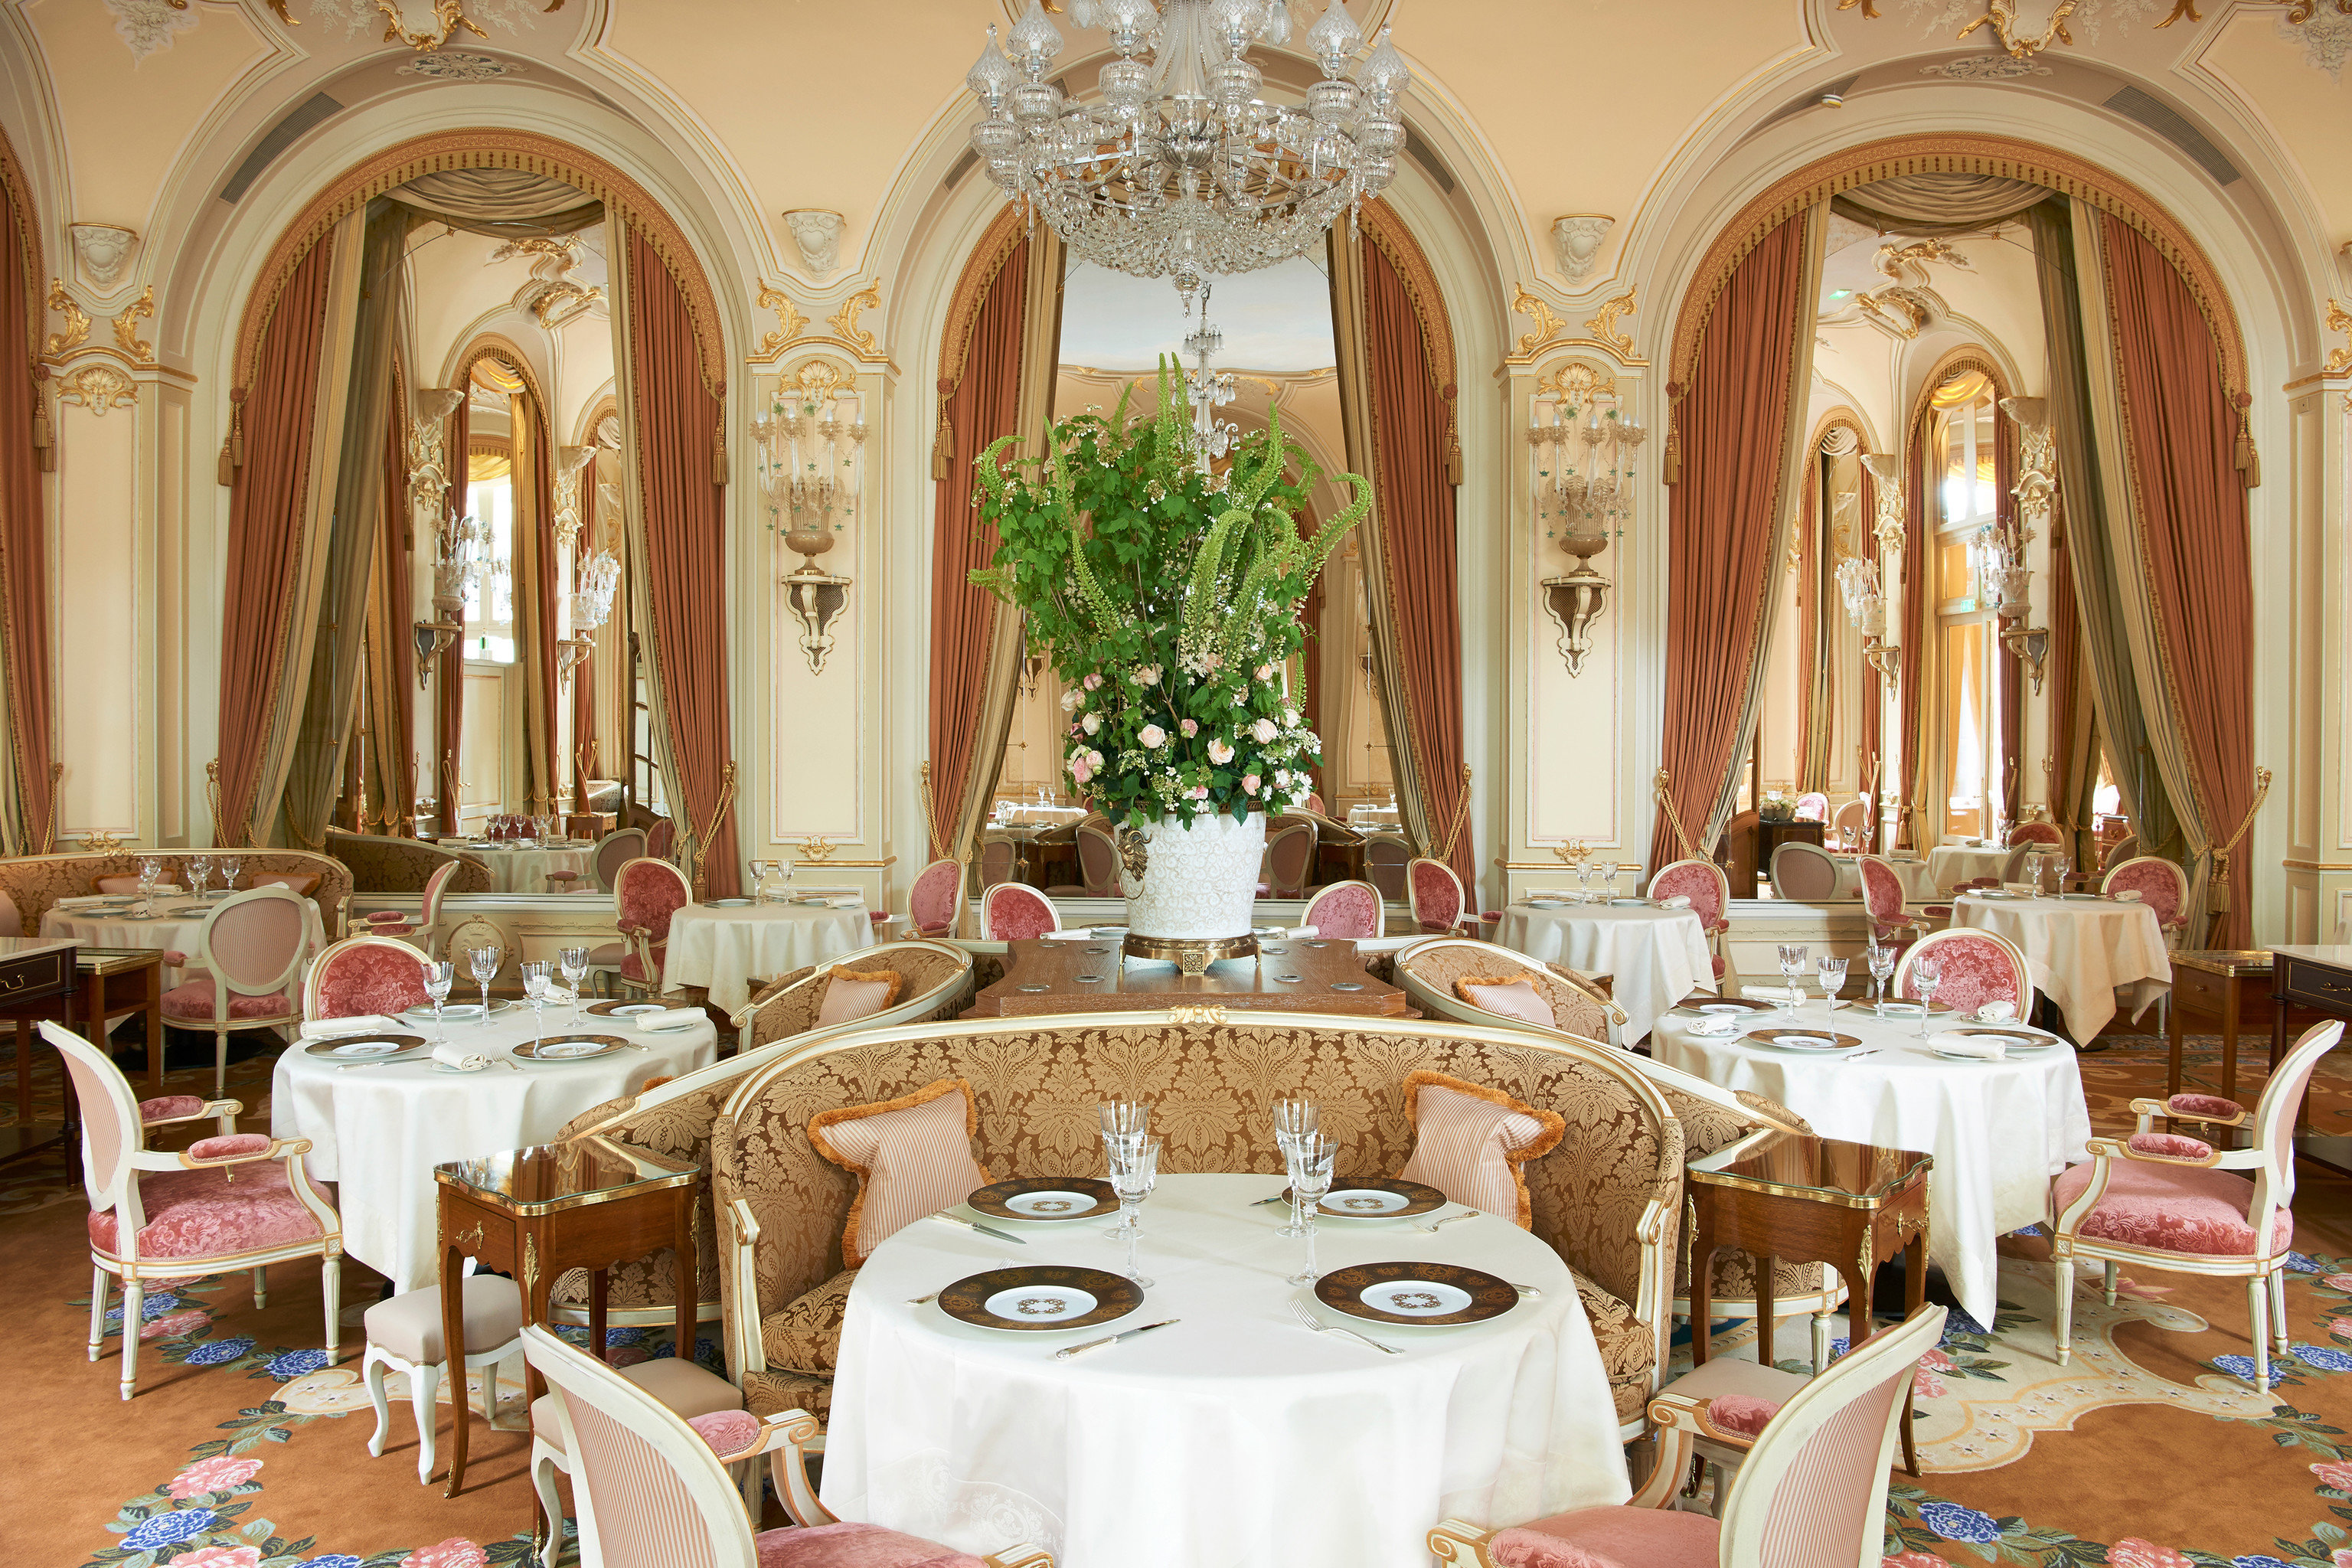 Hotels Romance Travel Tips table indoor chair function hall room Dining meal ceremony wedding ballroom aisle wedding reception palace banquet interior design estate fancy set dining table several dining room